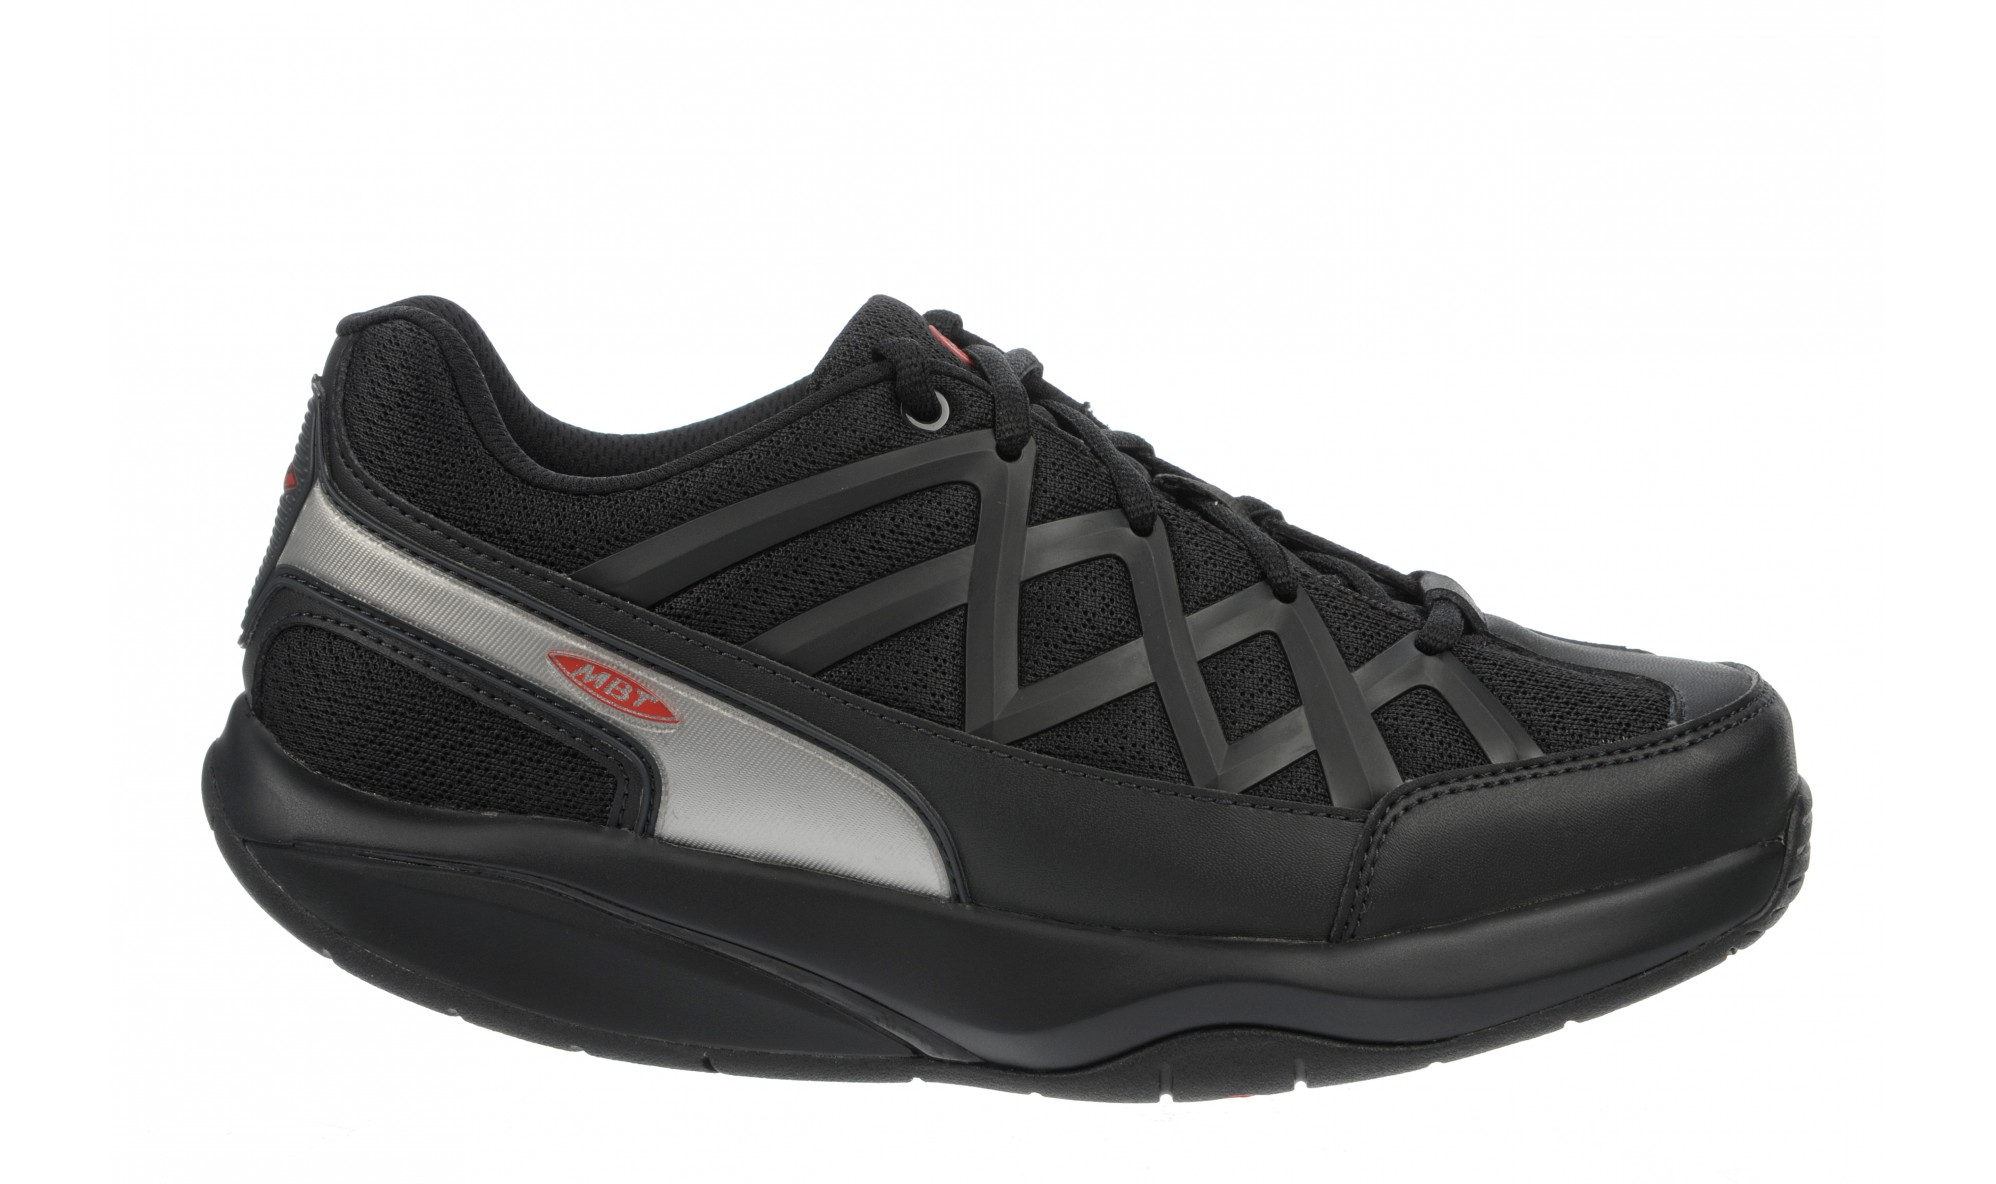 MBT Men's Sport 3 WIDE Black